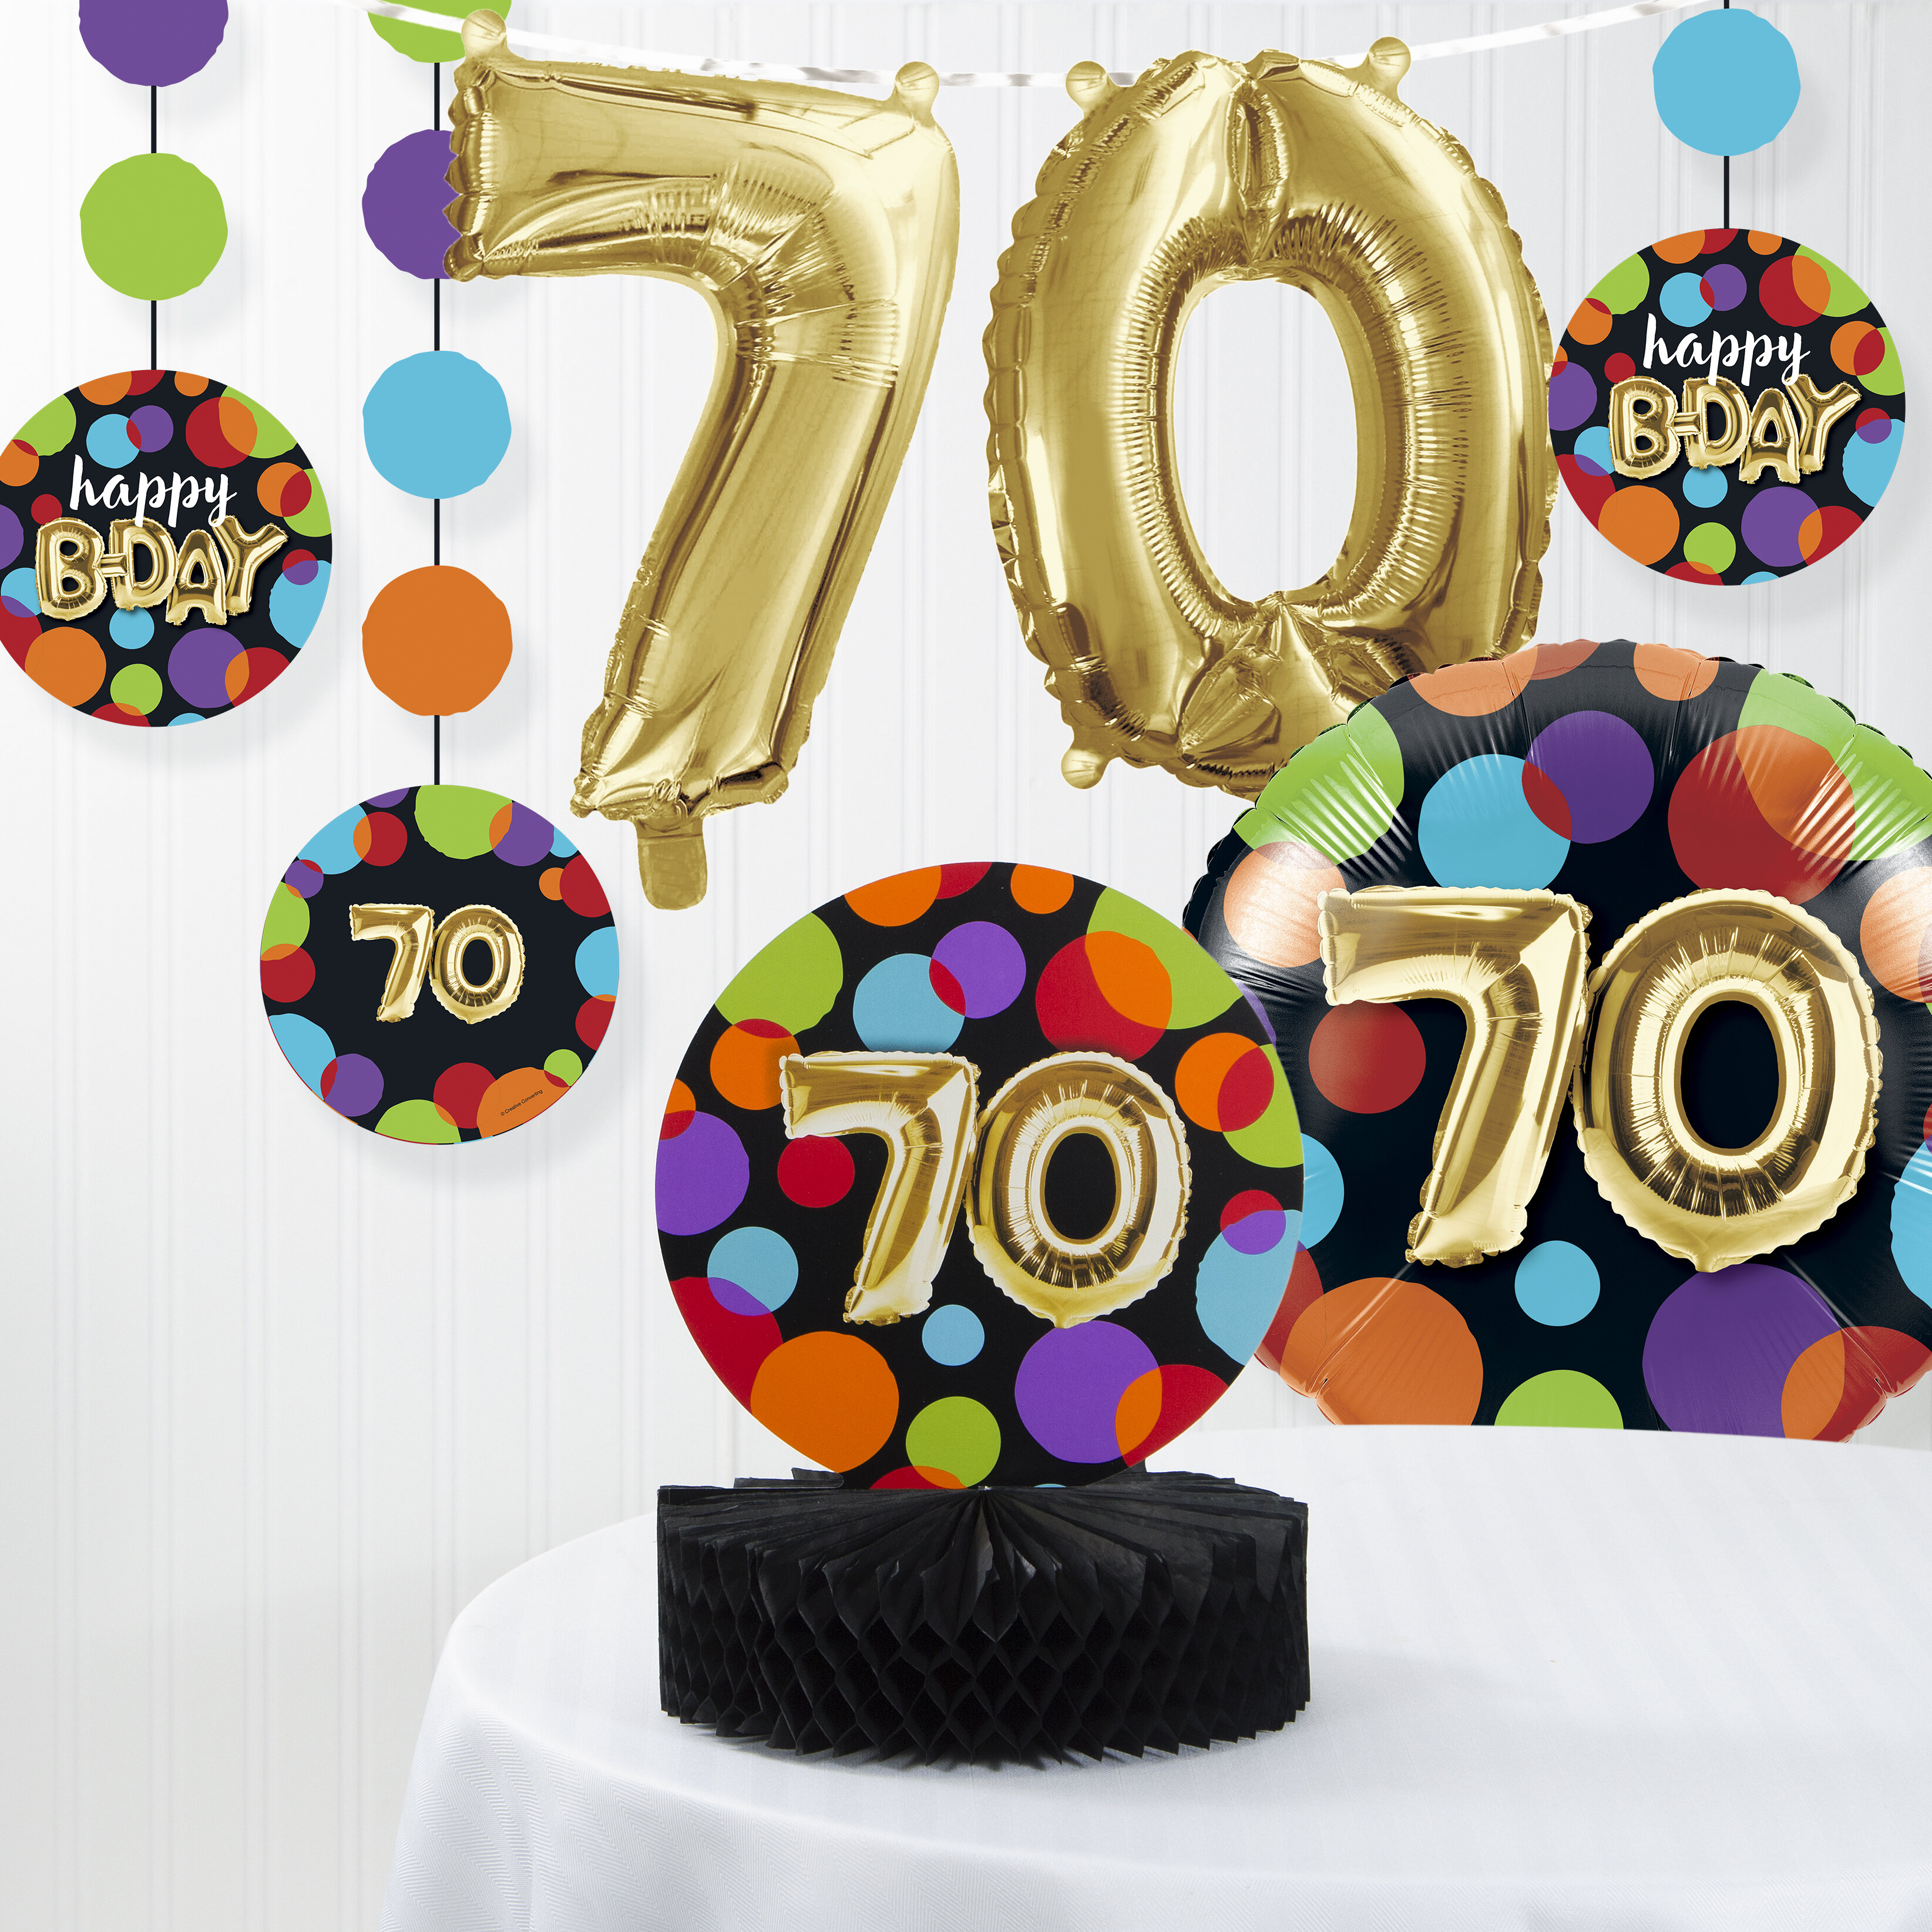 The Party Aisle Balloon 70th Birthday Decorations Kit